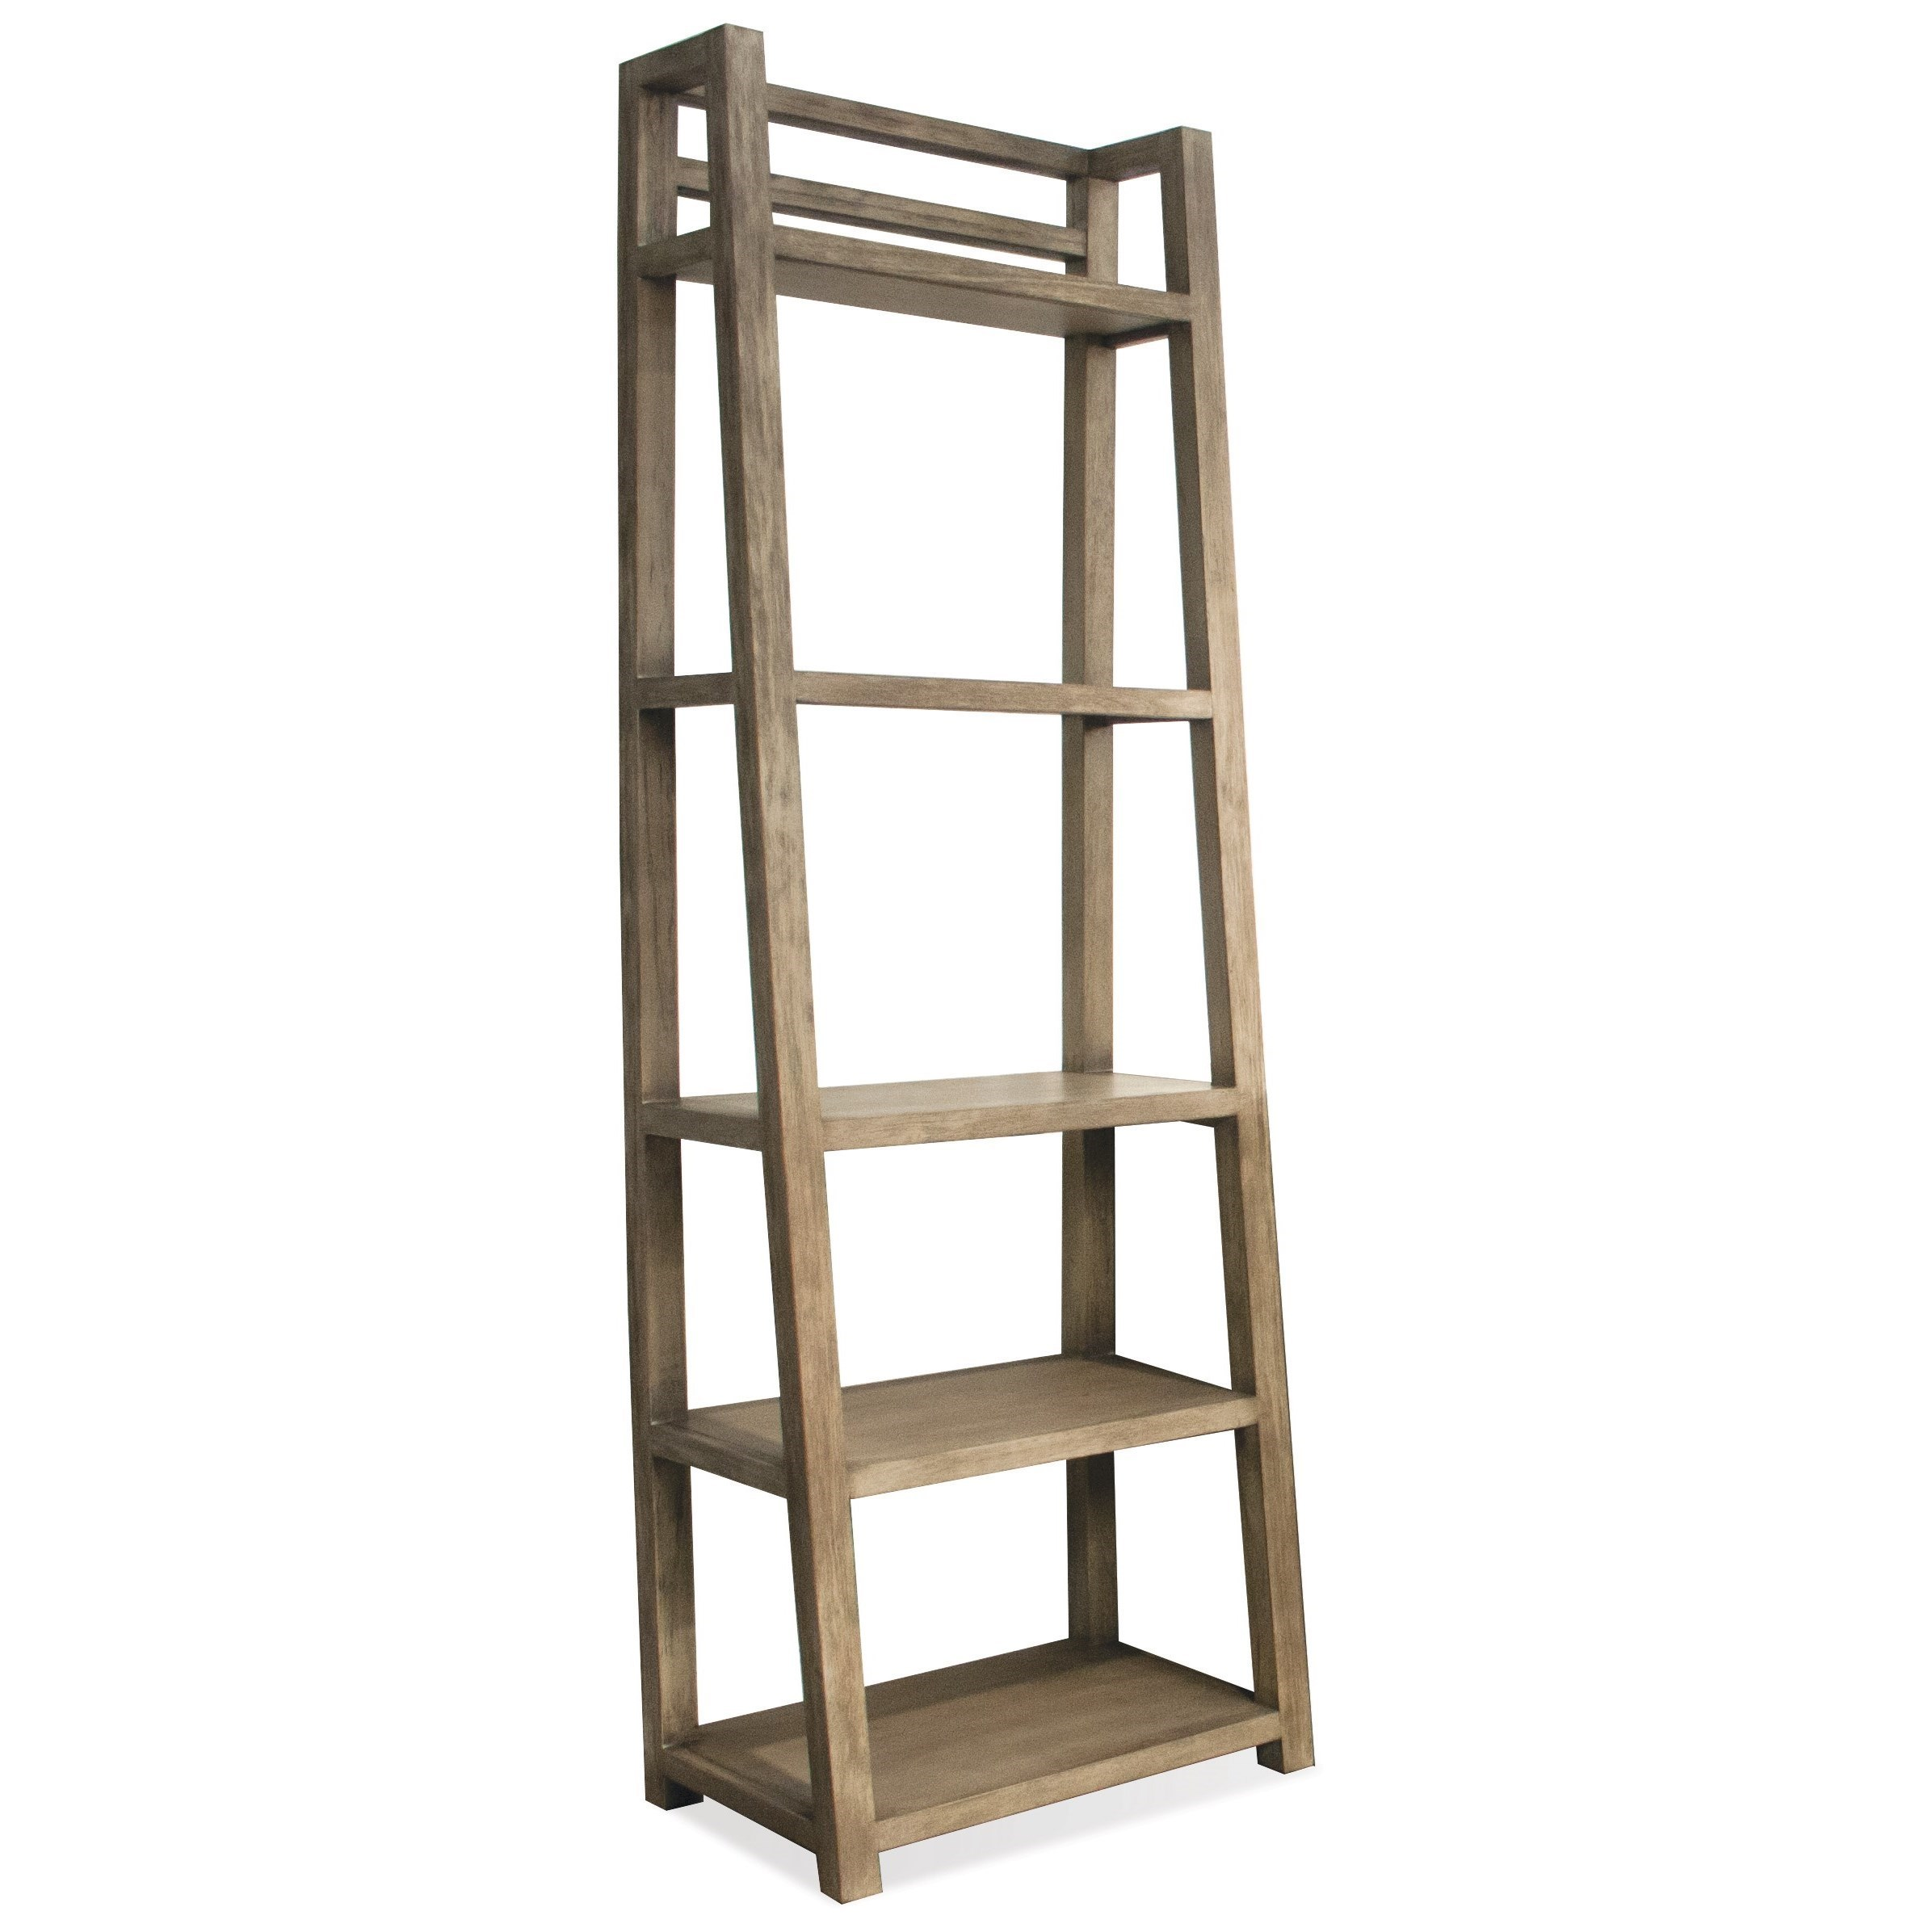 Etonnant Riverside Furniture Perspectives Leaning Bookcase With 5 Shelves